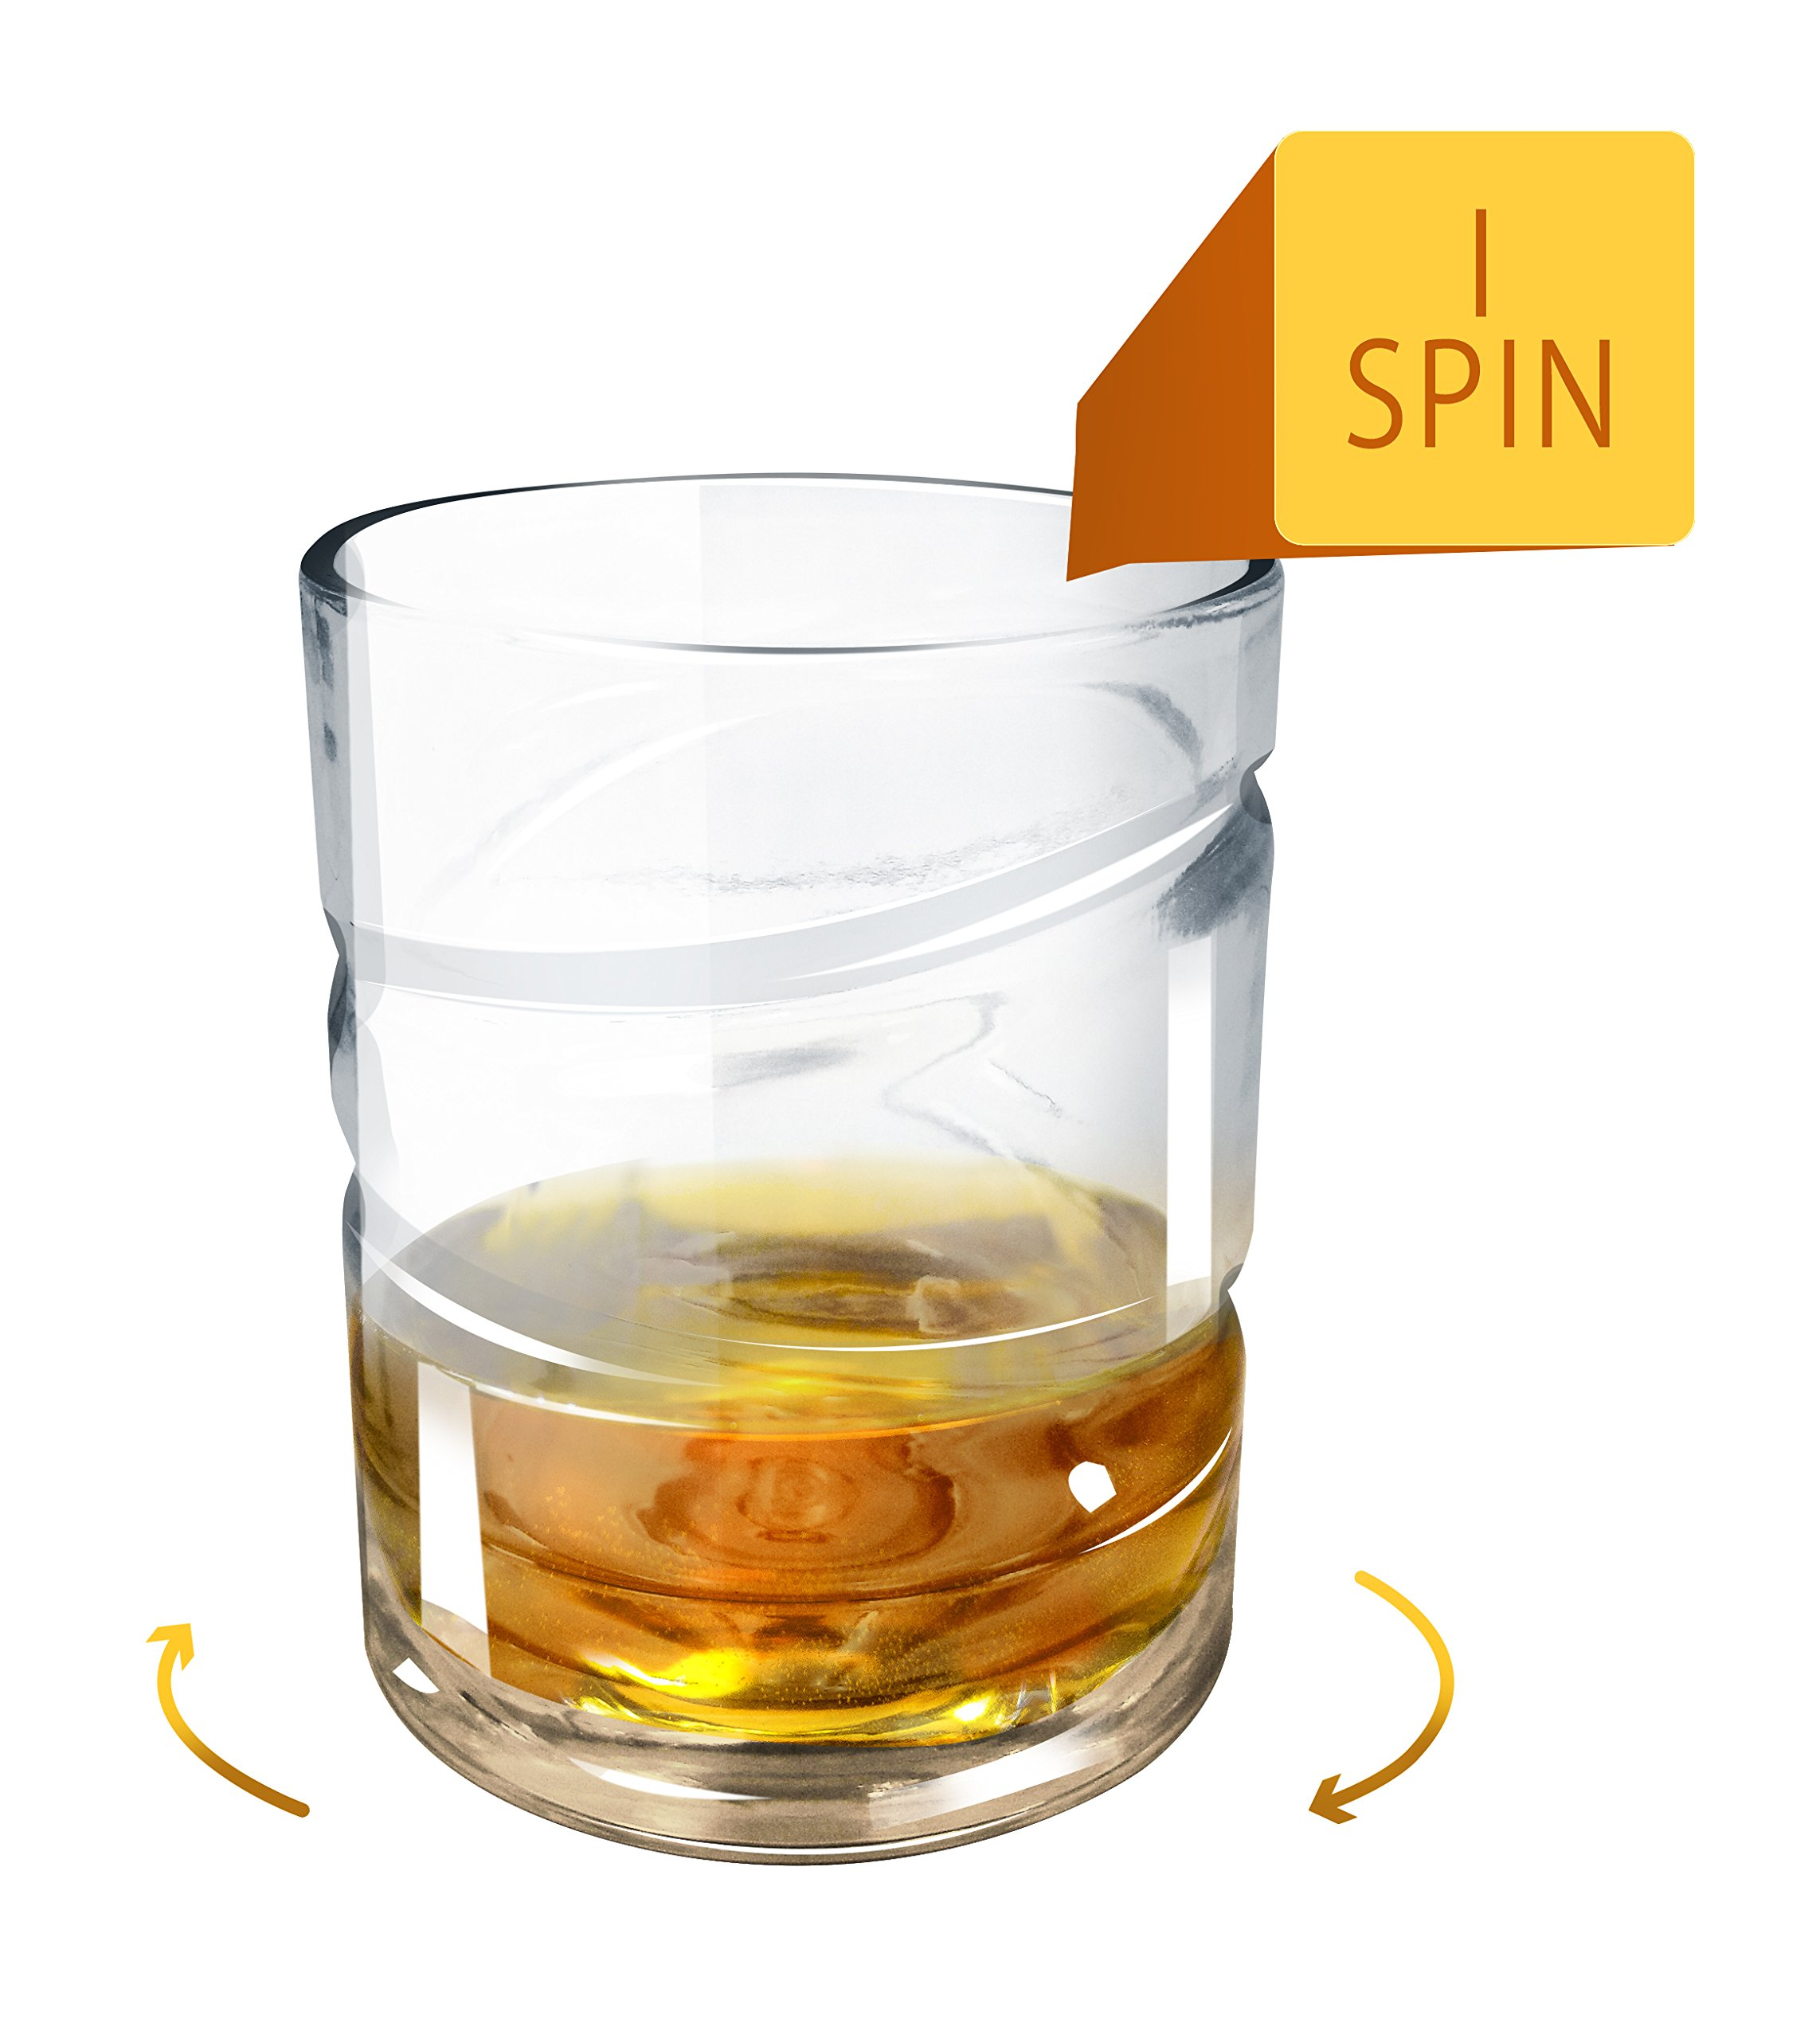 Epicureanist Helix Whiskey Glass - Rotating Whiskey Glass Tumbler Aerates your Favorite Spirits Unlocking Their Complex Flavors and Aromas - Set of 2